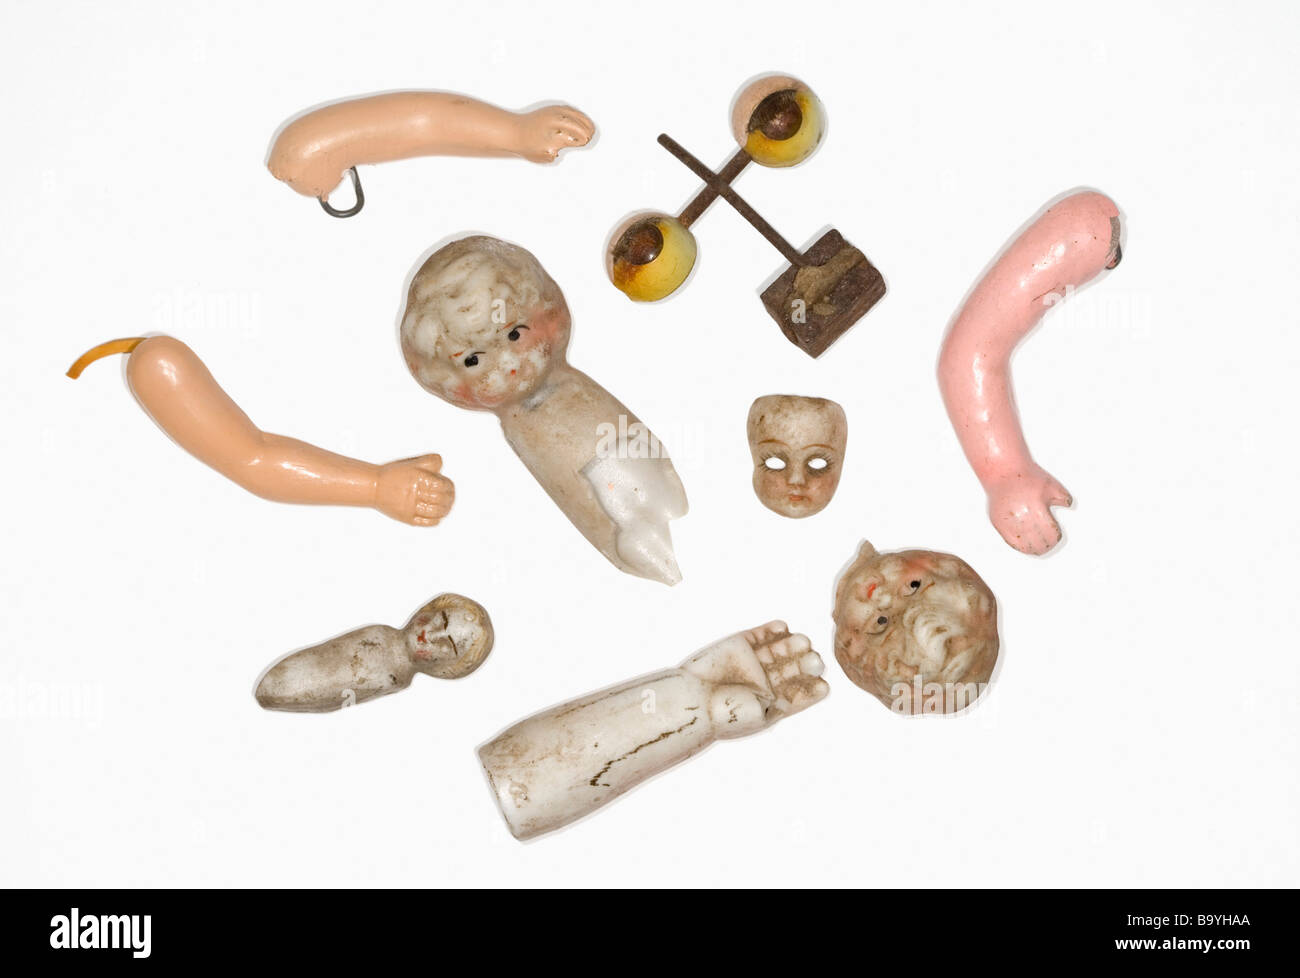 Antique doll parts. - Stock Image